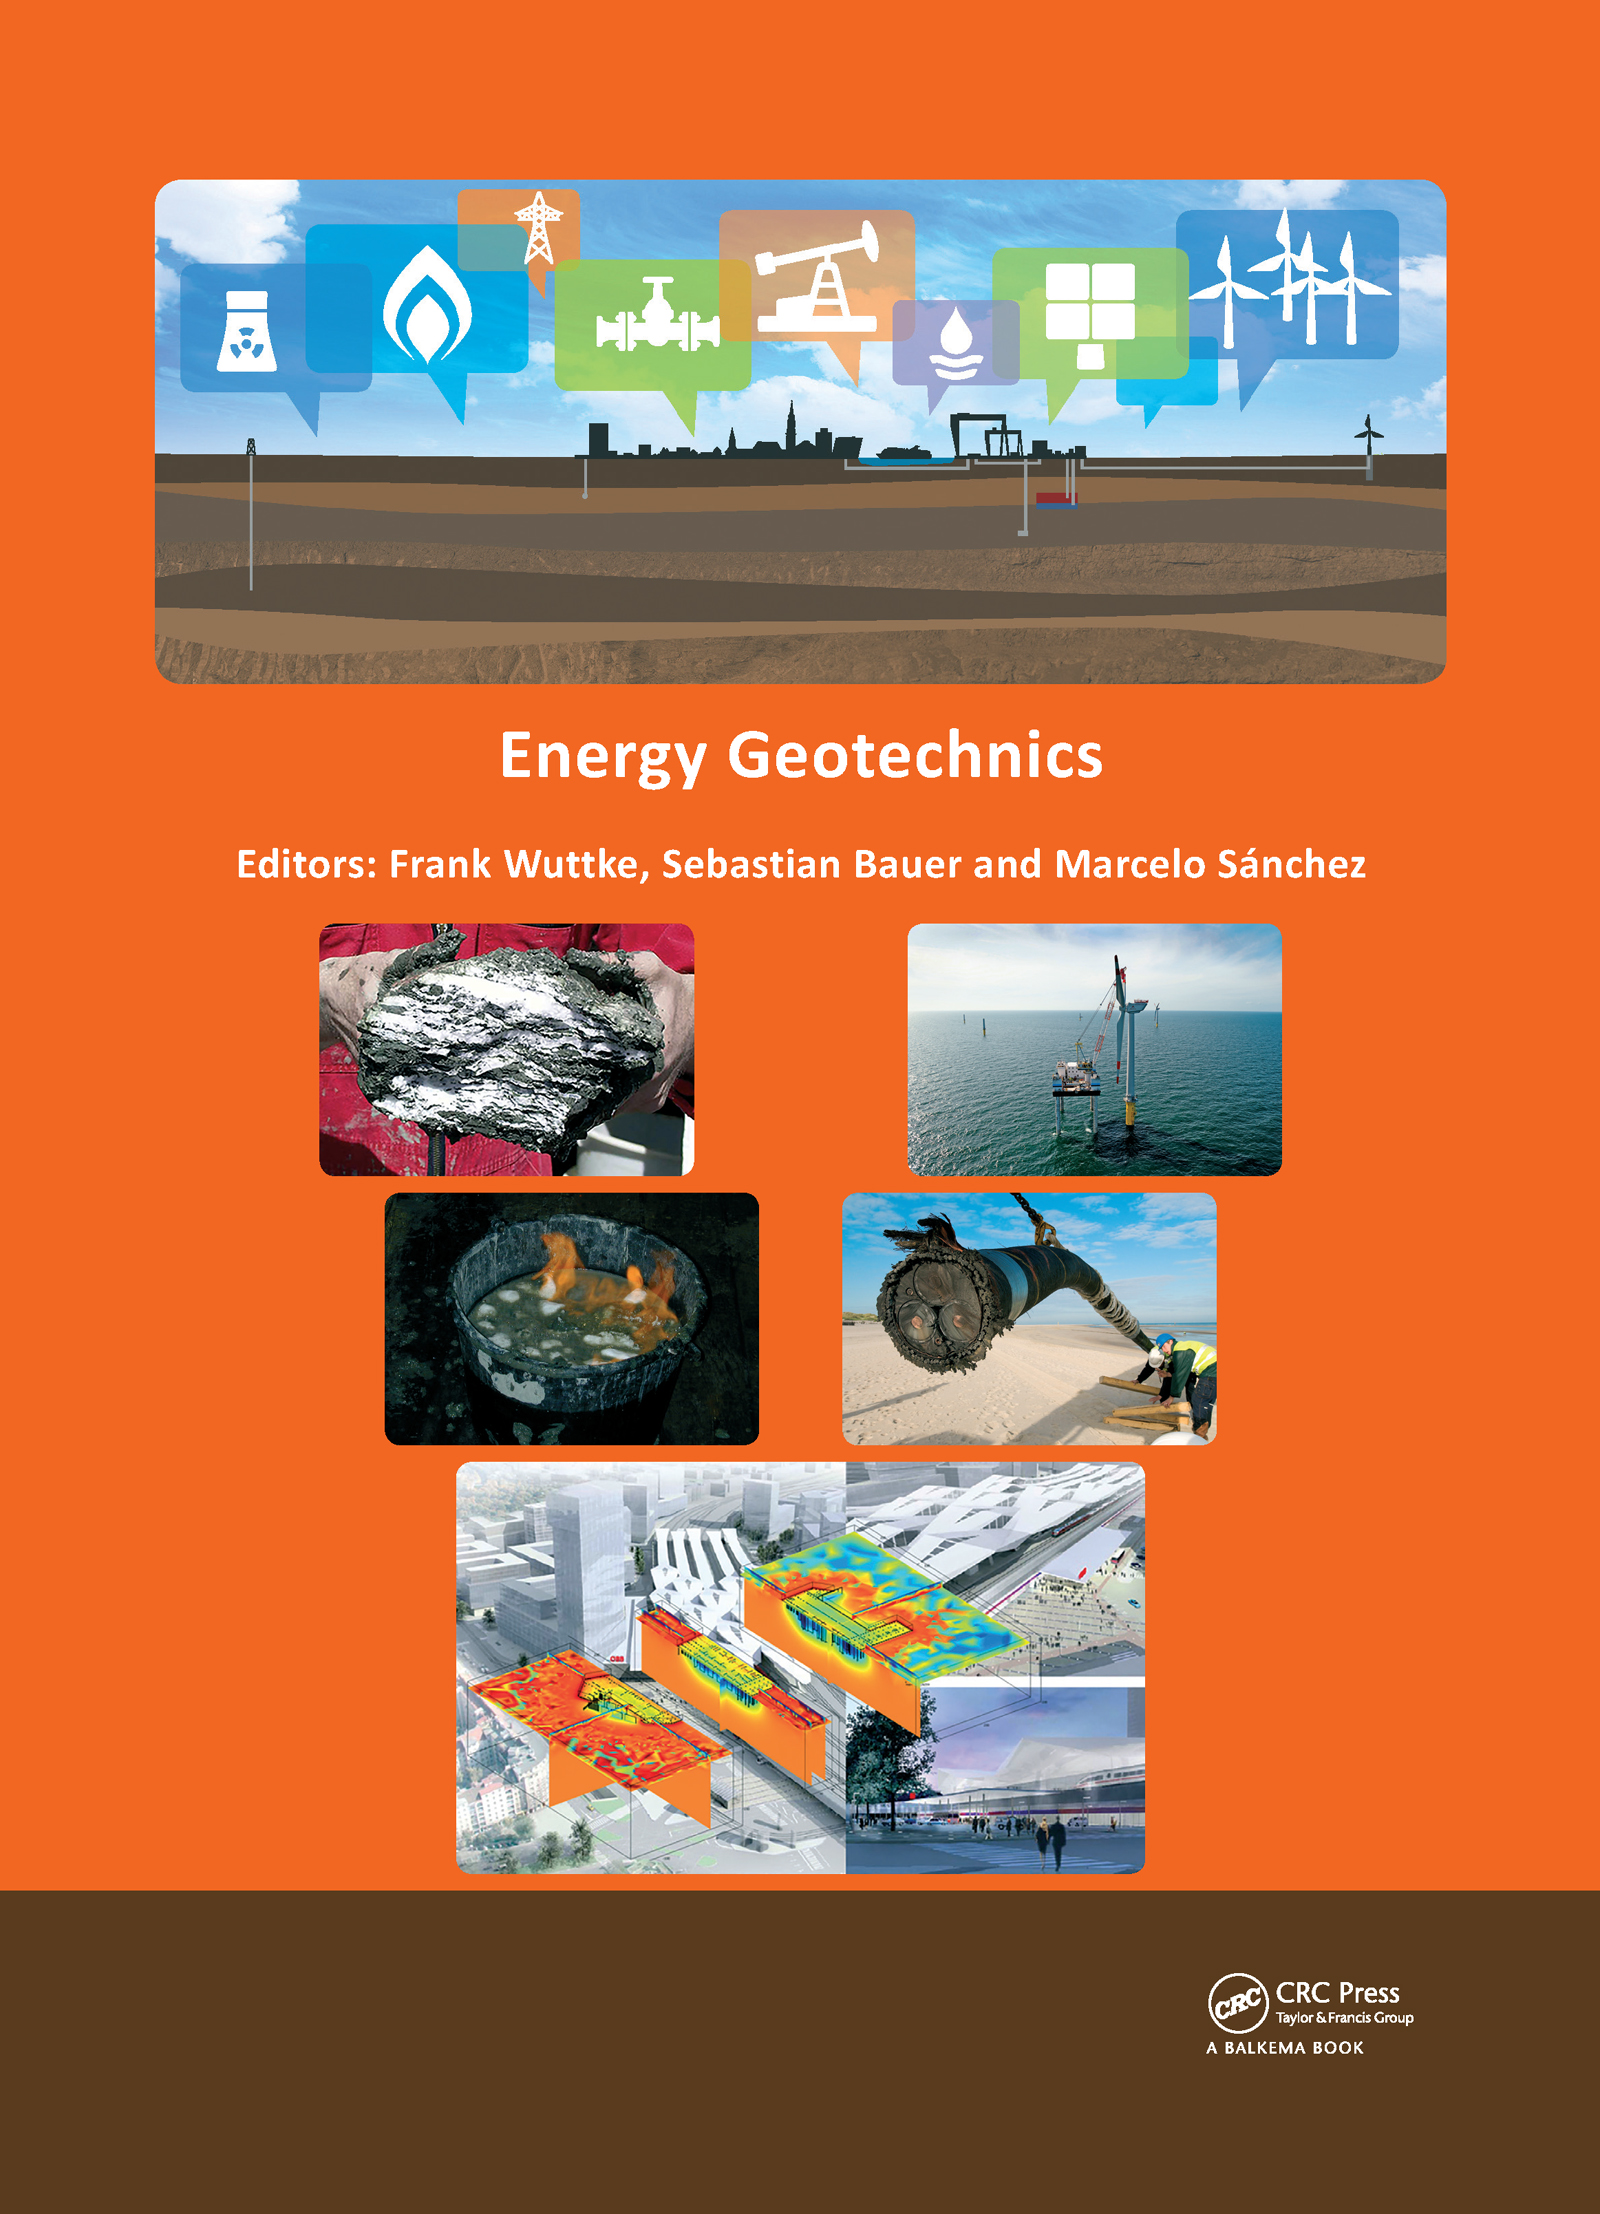 Energy Geotechnics: Proceedings of the 1st International Conference on Energy Geotechnics, ICEGT 2016, Kiel, Germany, 29-31 August 2016, 1st Edition (Pack - Book and CD) book cover